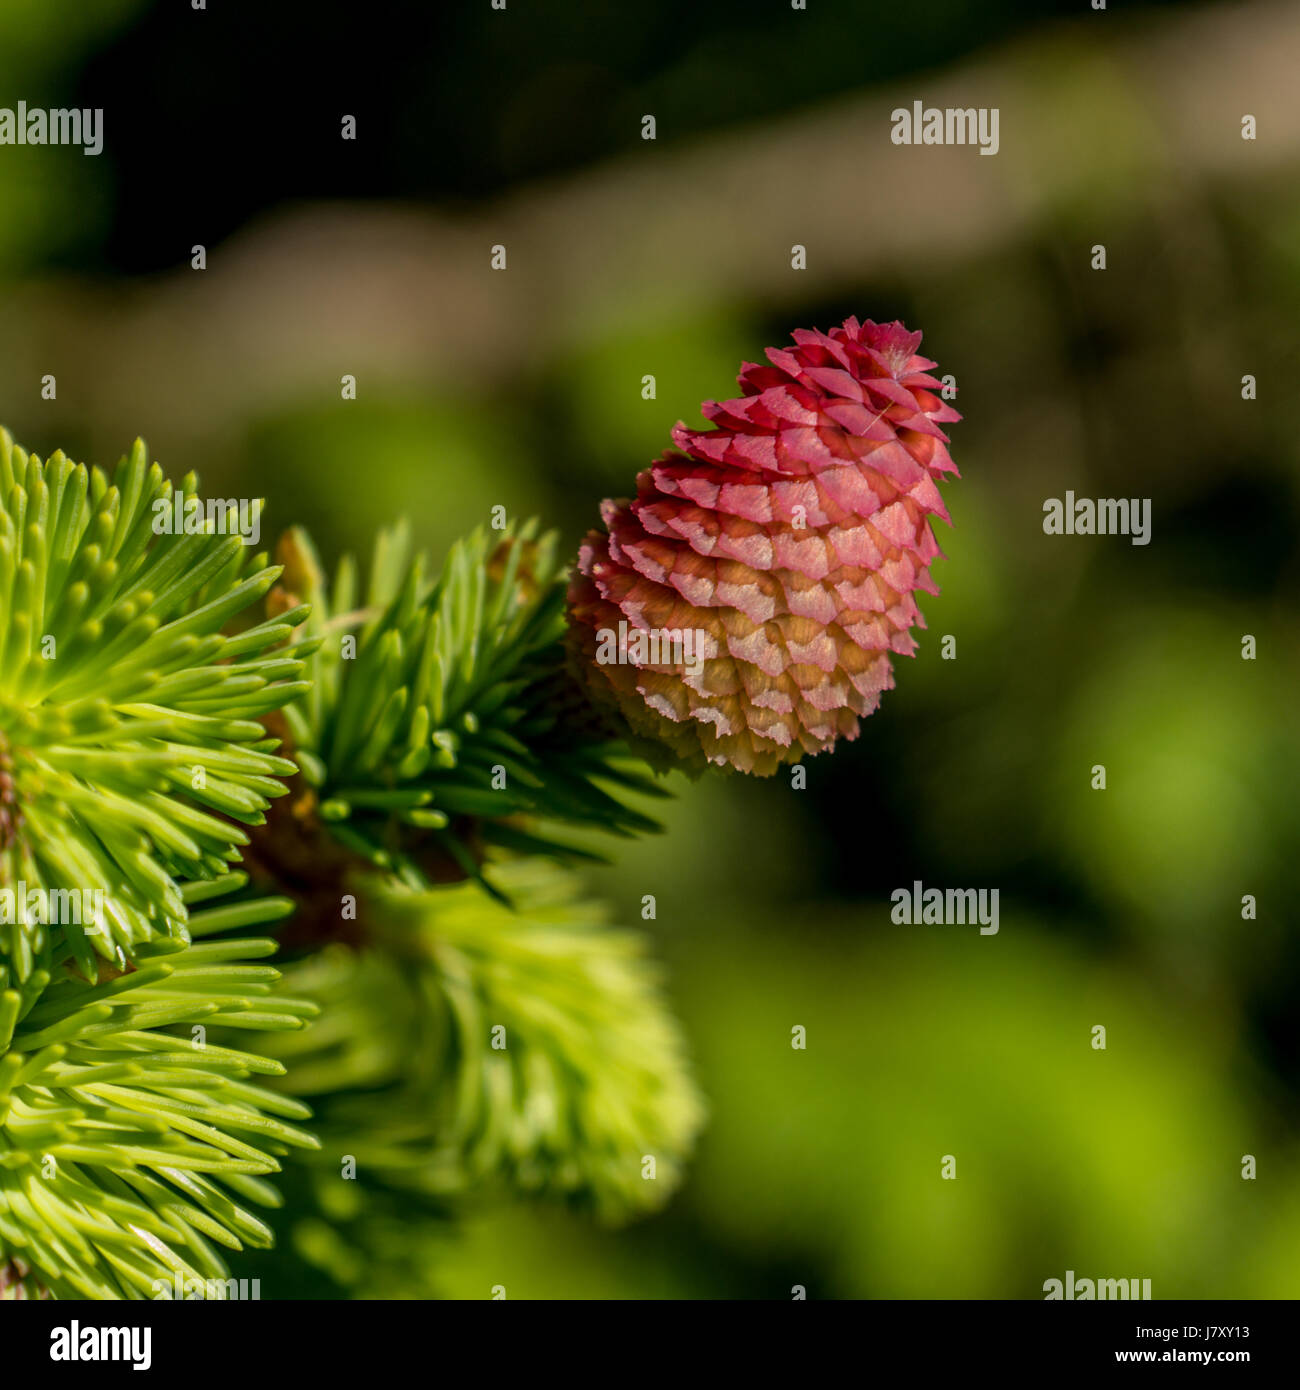 Bright pink cones of a Norway Spruce tree near the Stanley Park Pavilion in Vancouver, BC.<br><br>Thank - Stock Image